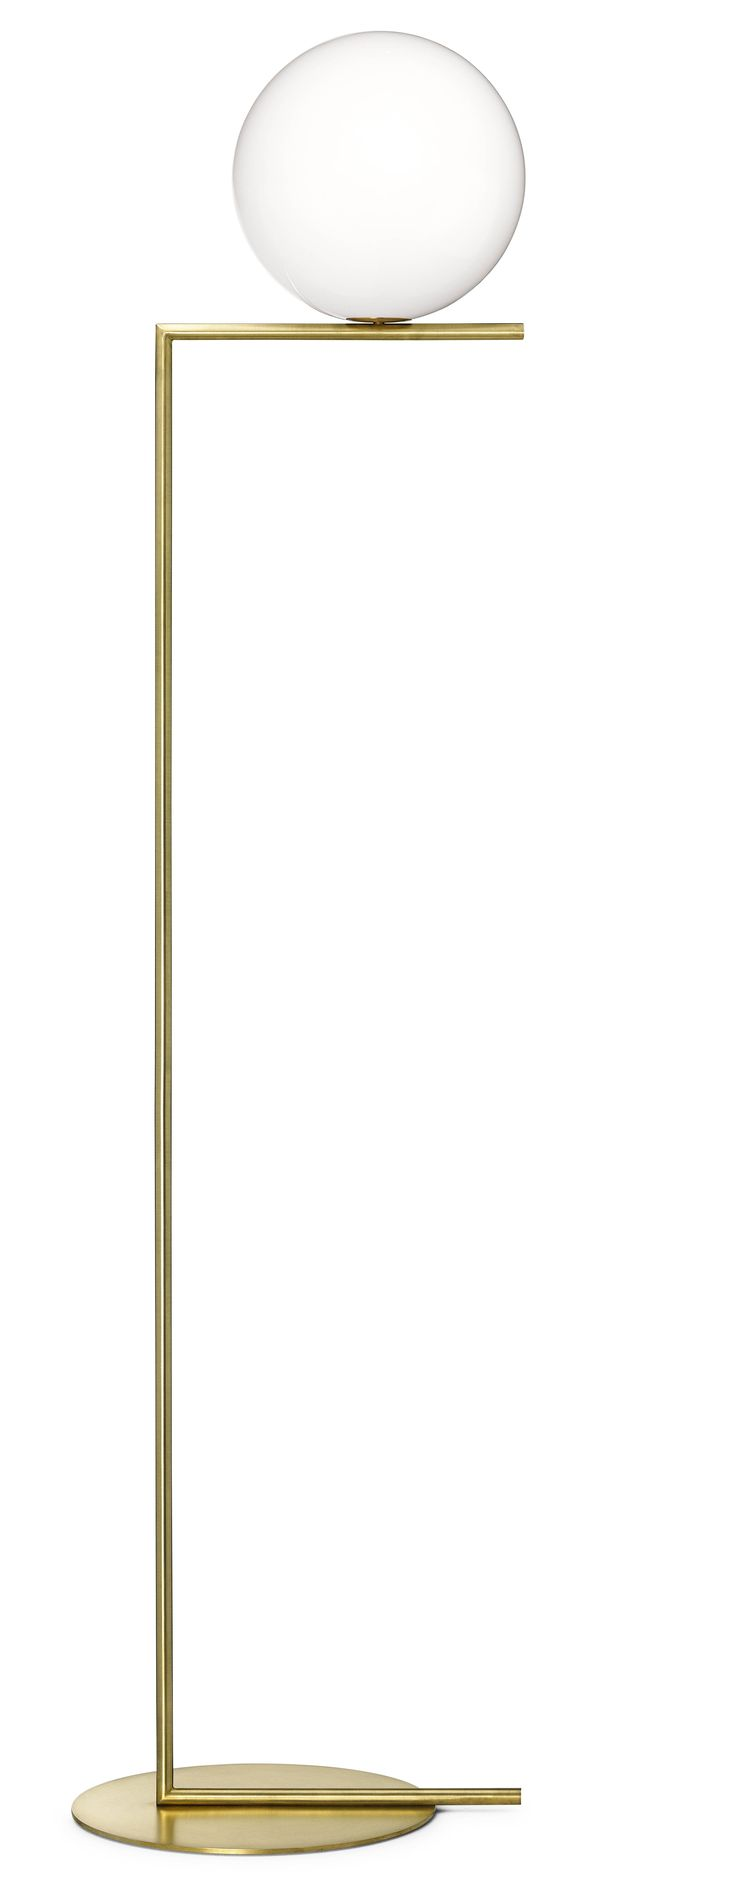 IC Light F2 Brass designed by Michael Anastassiades for Flos Lighting